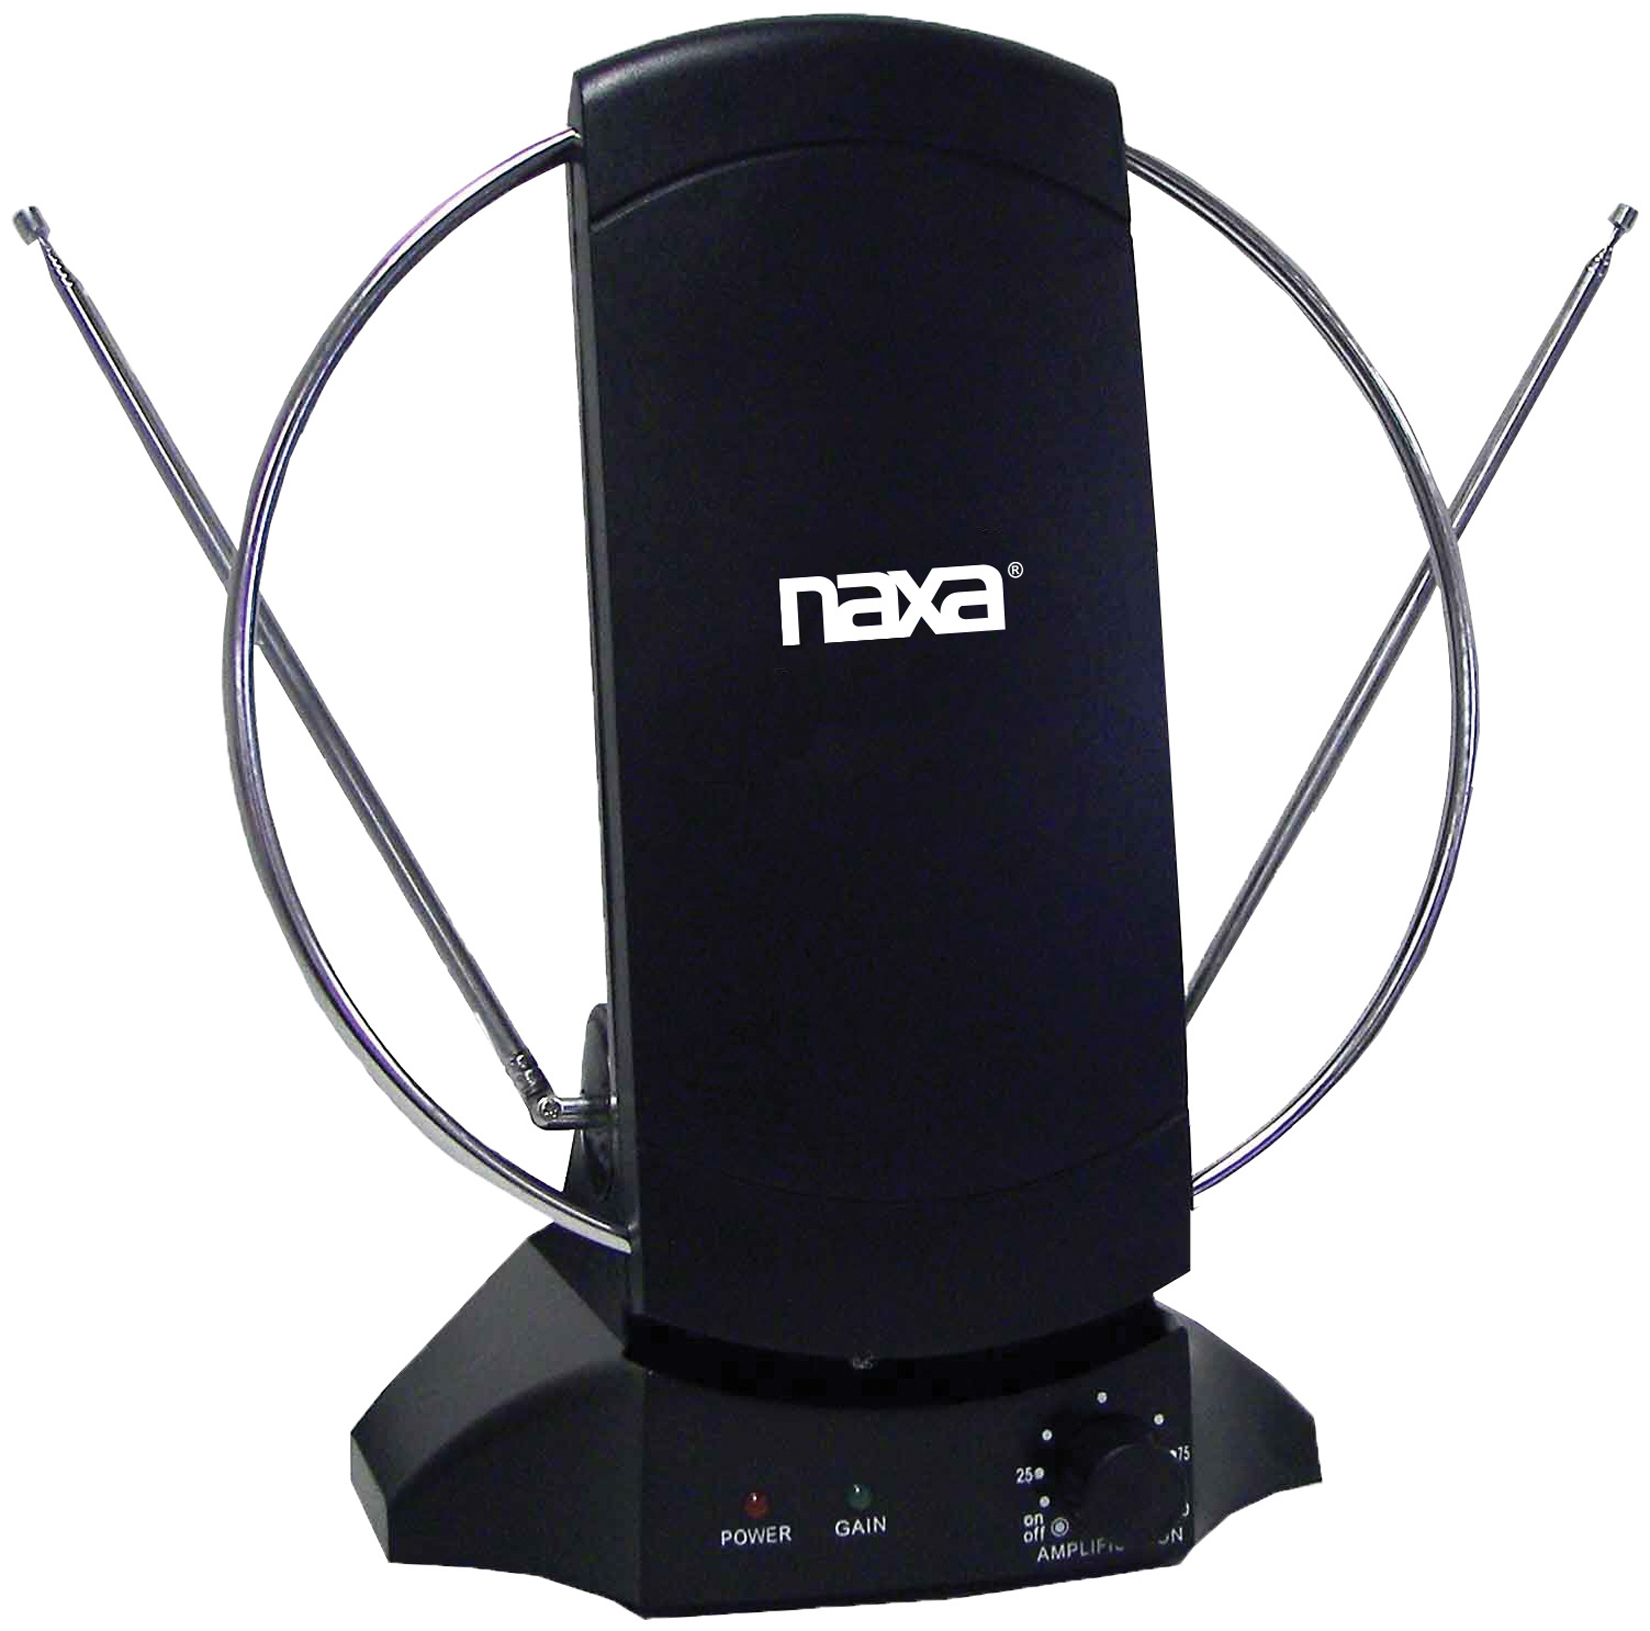 Naxa NAA308 High-Powered Amplified ATSC/HDTV/FM Antenna